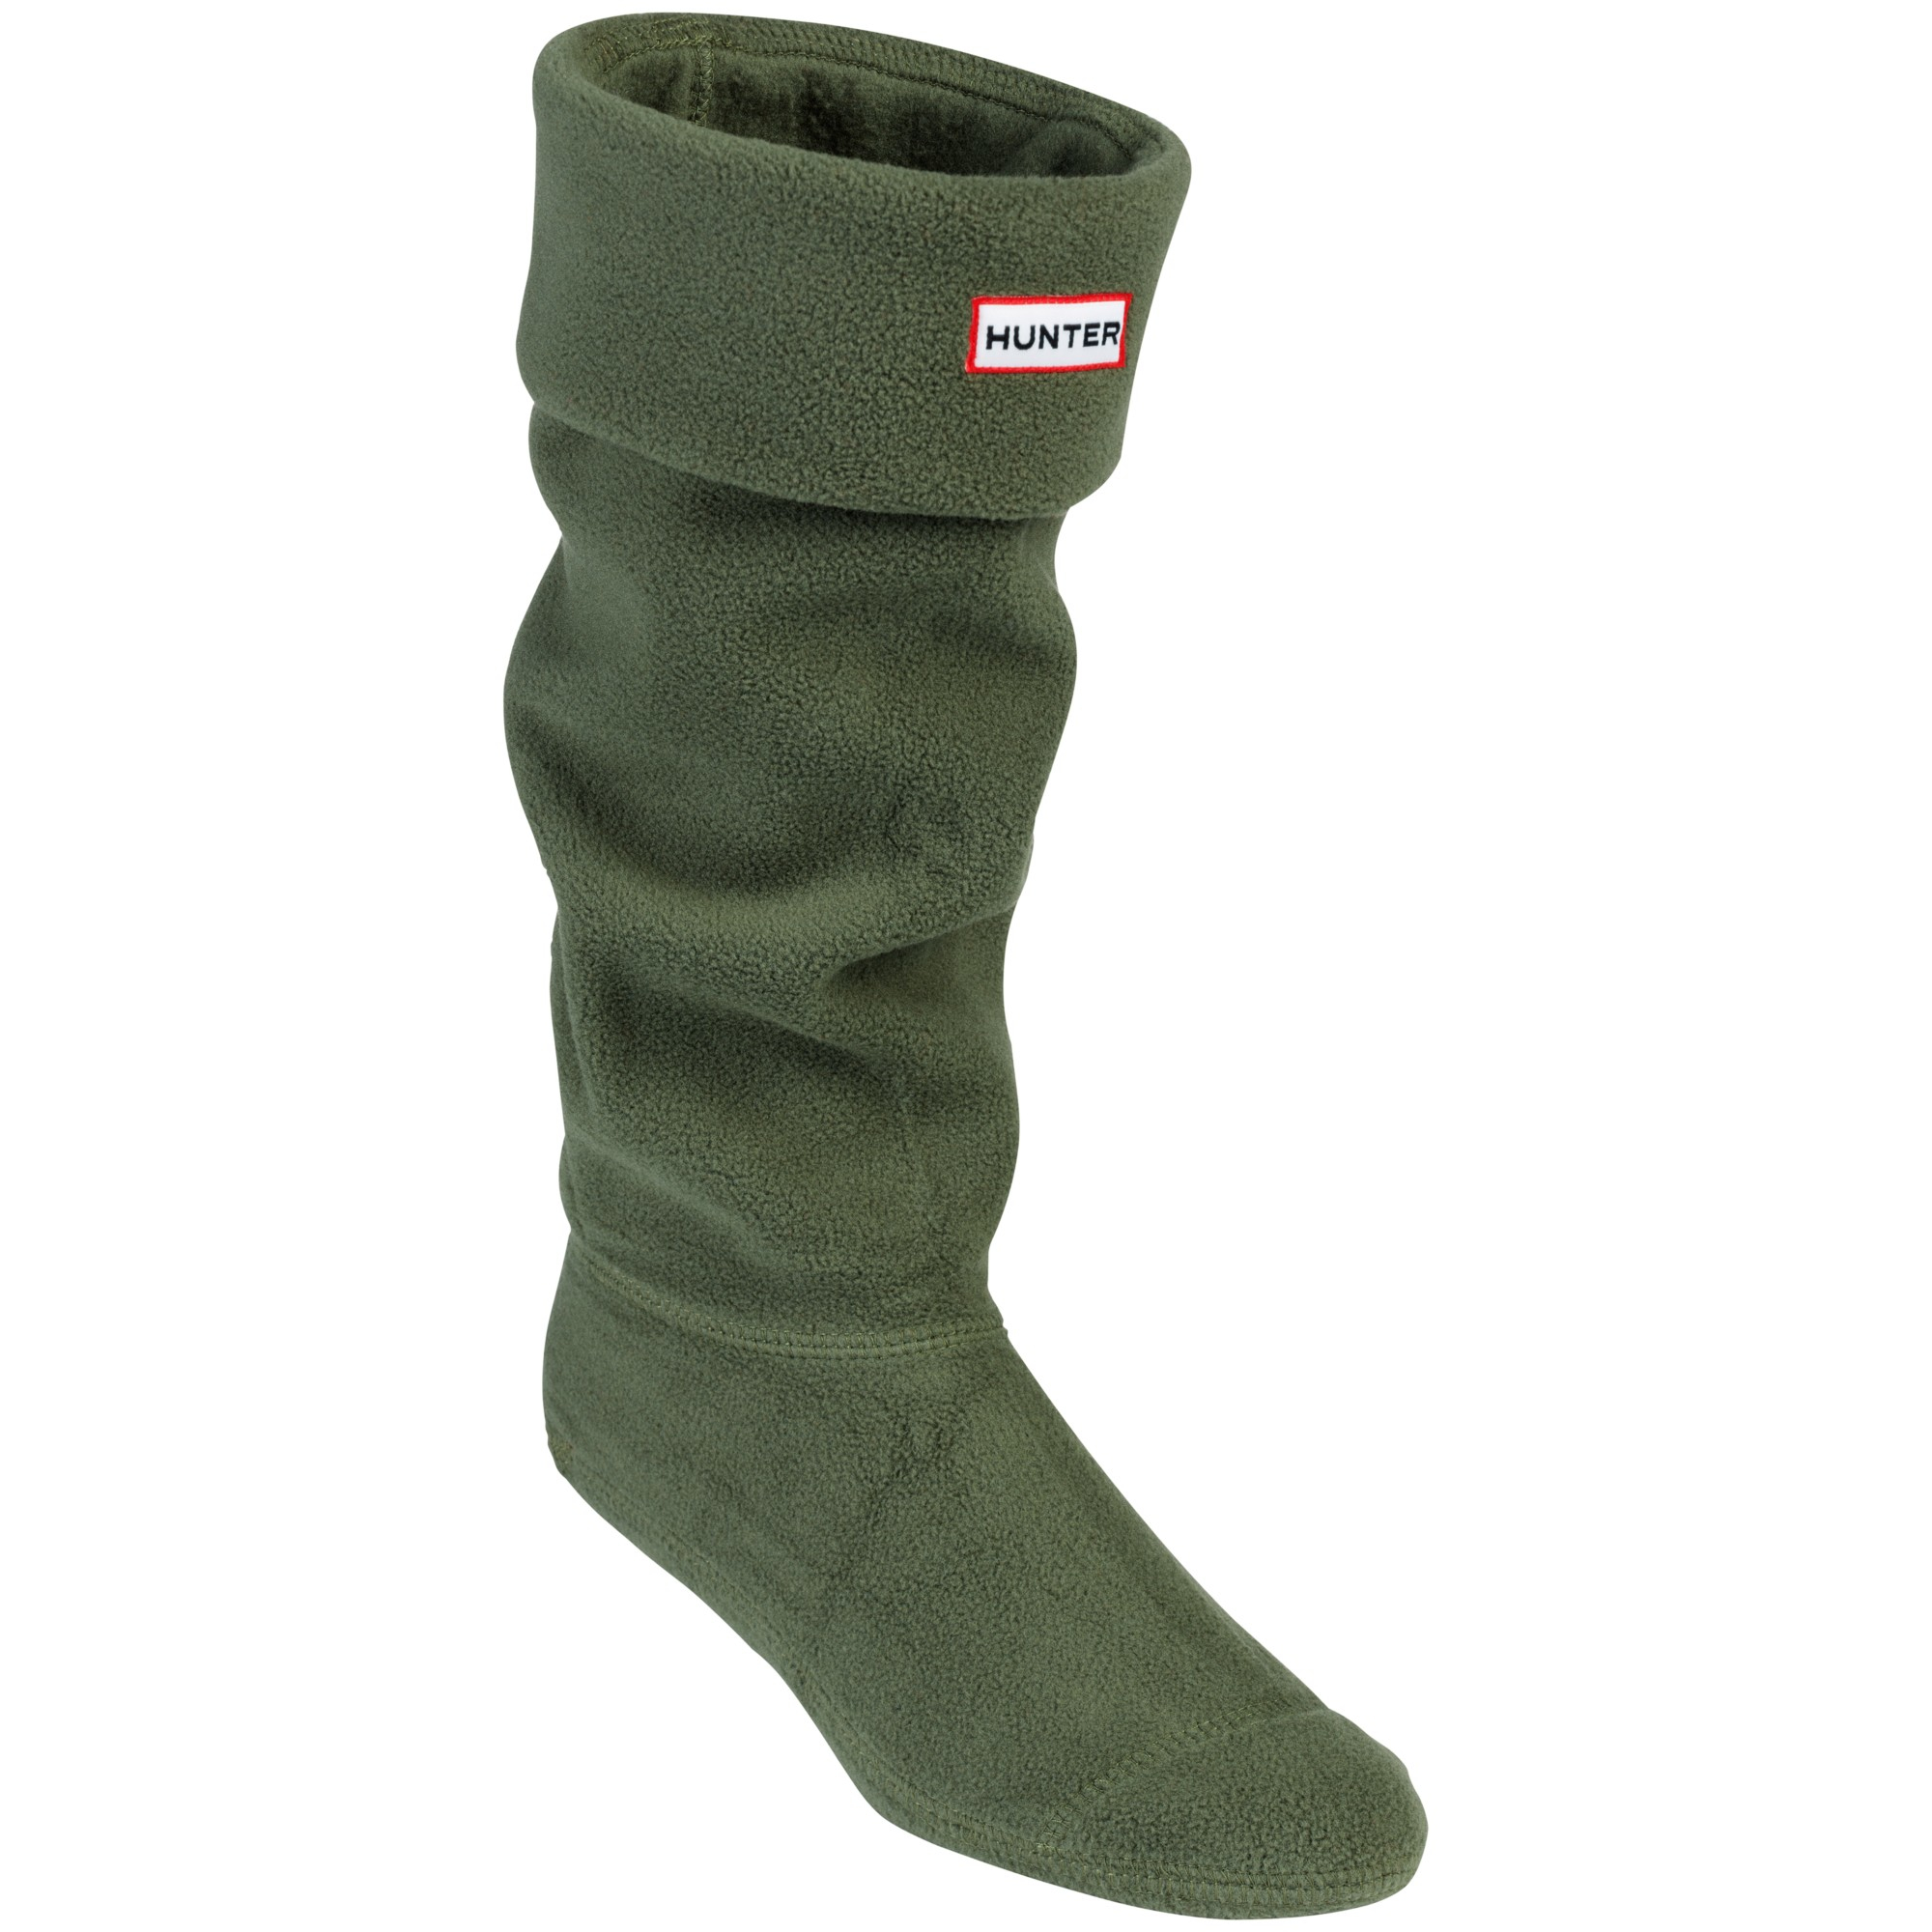 Hunter Unisex Fleece Welly Socks Newest Sale Online Collections Sale Online Shop Offer Outlet Official Site Clearance Websites pj6X9QEtK